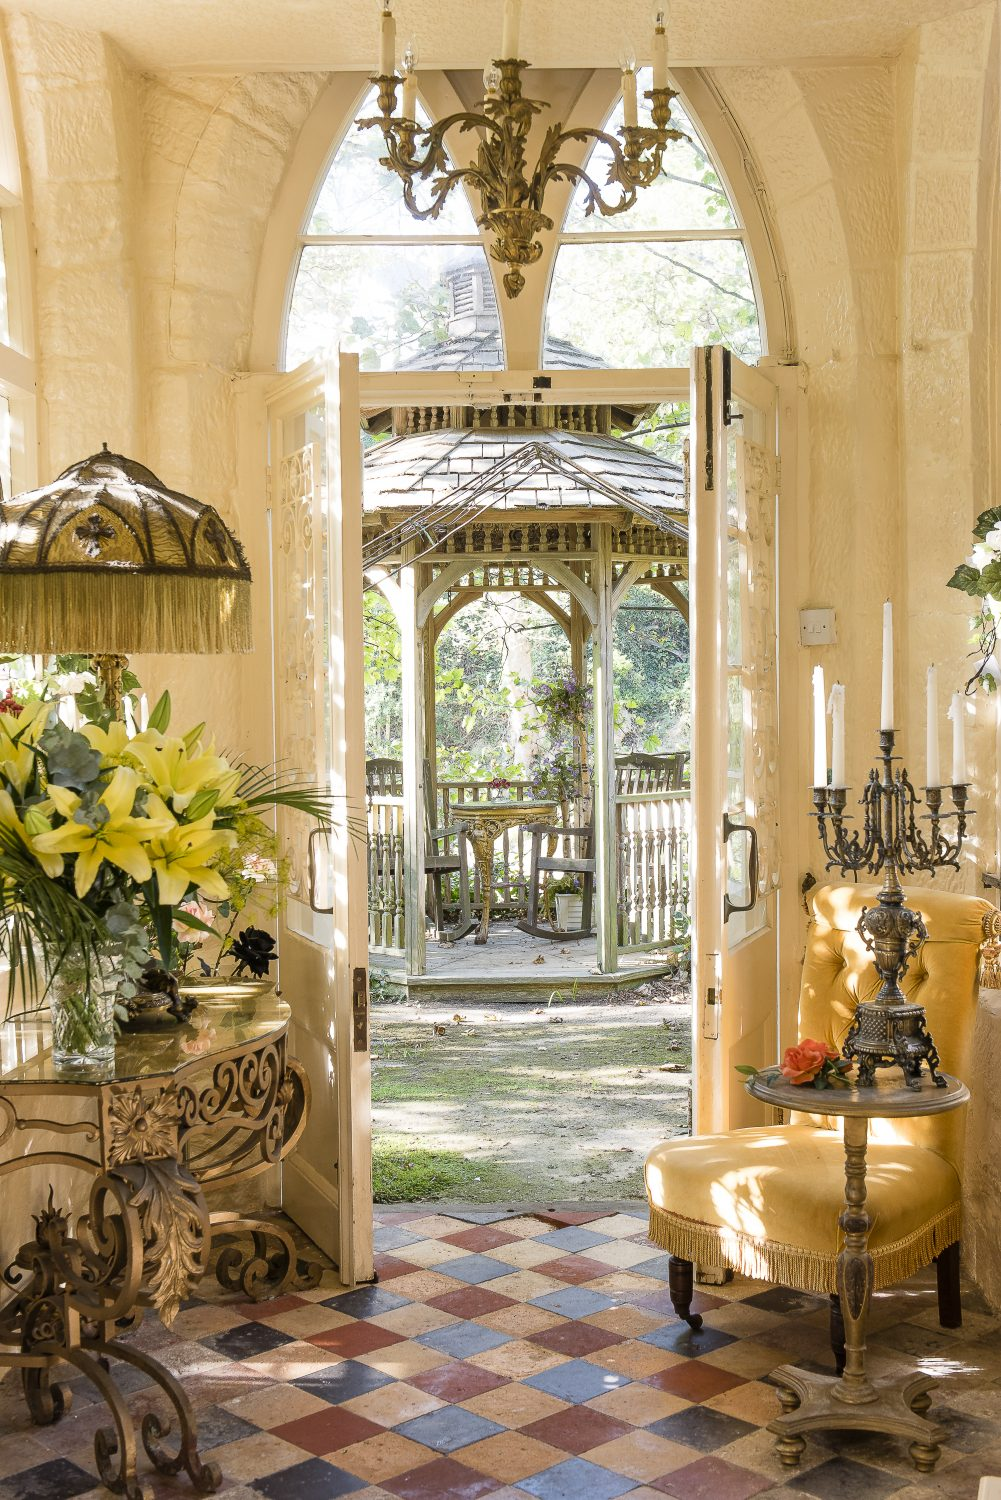 A tiled entrance porch leads out to the garden, with a bandstand-style summerhouse